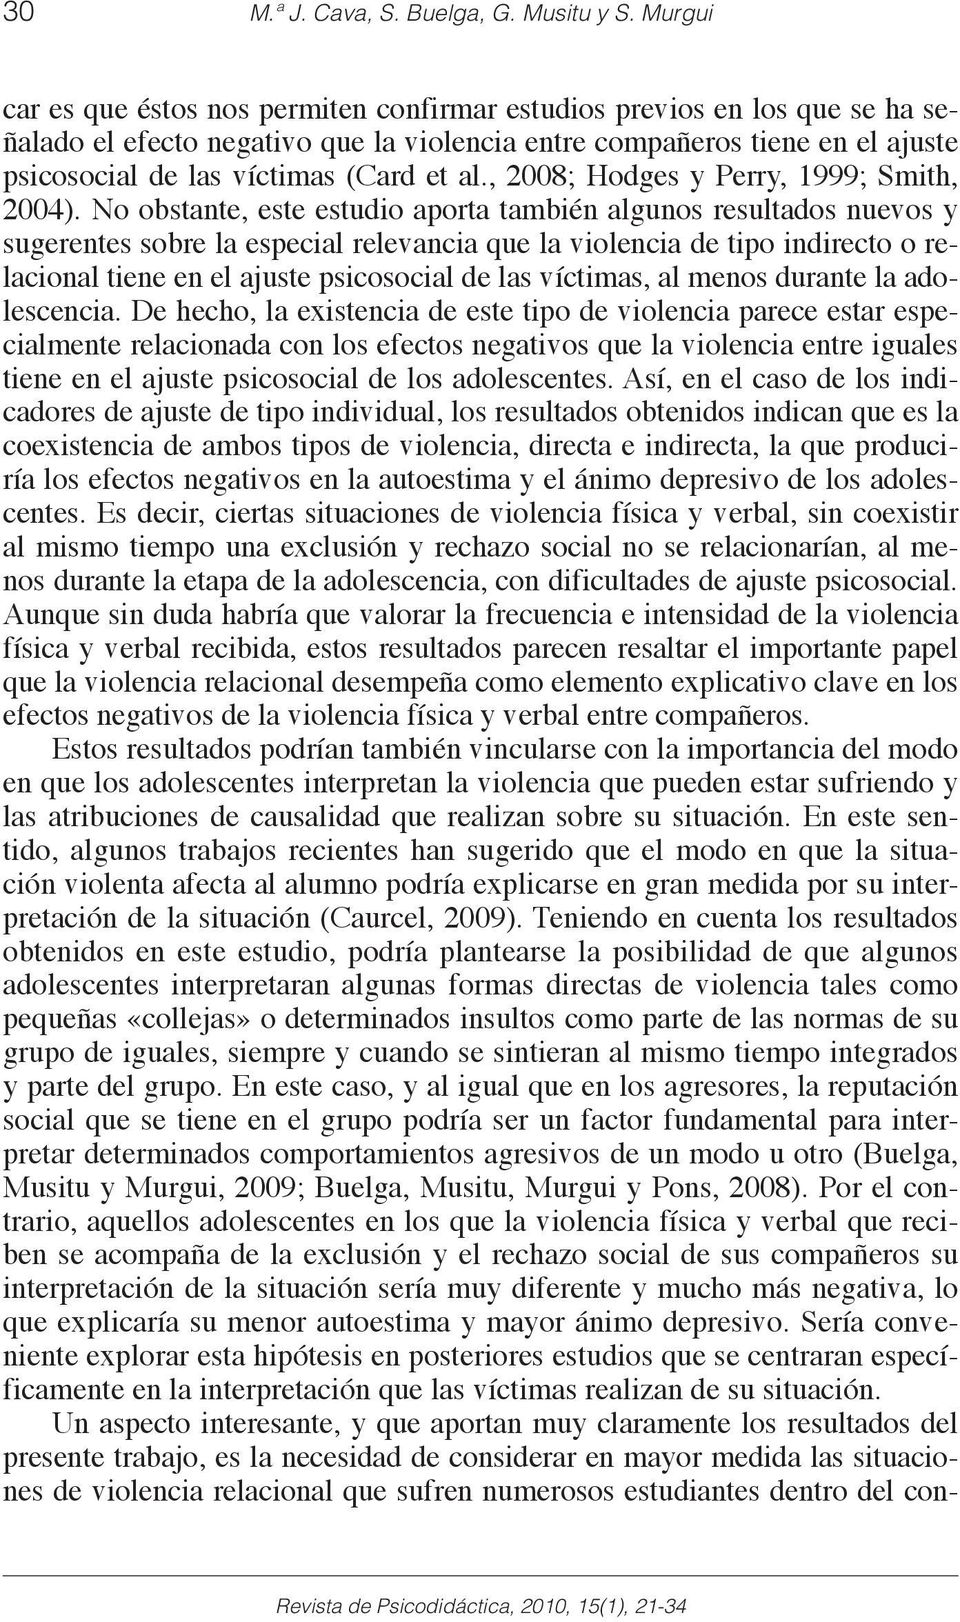 al., 2008; Hodges y Perry, 1999; Smith, 2004).